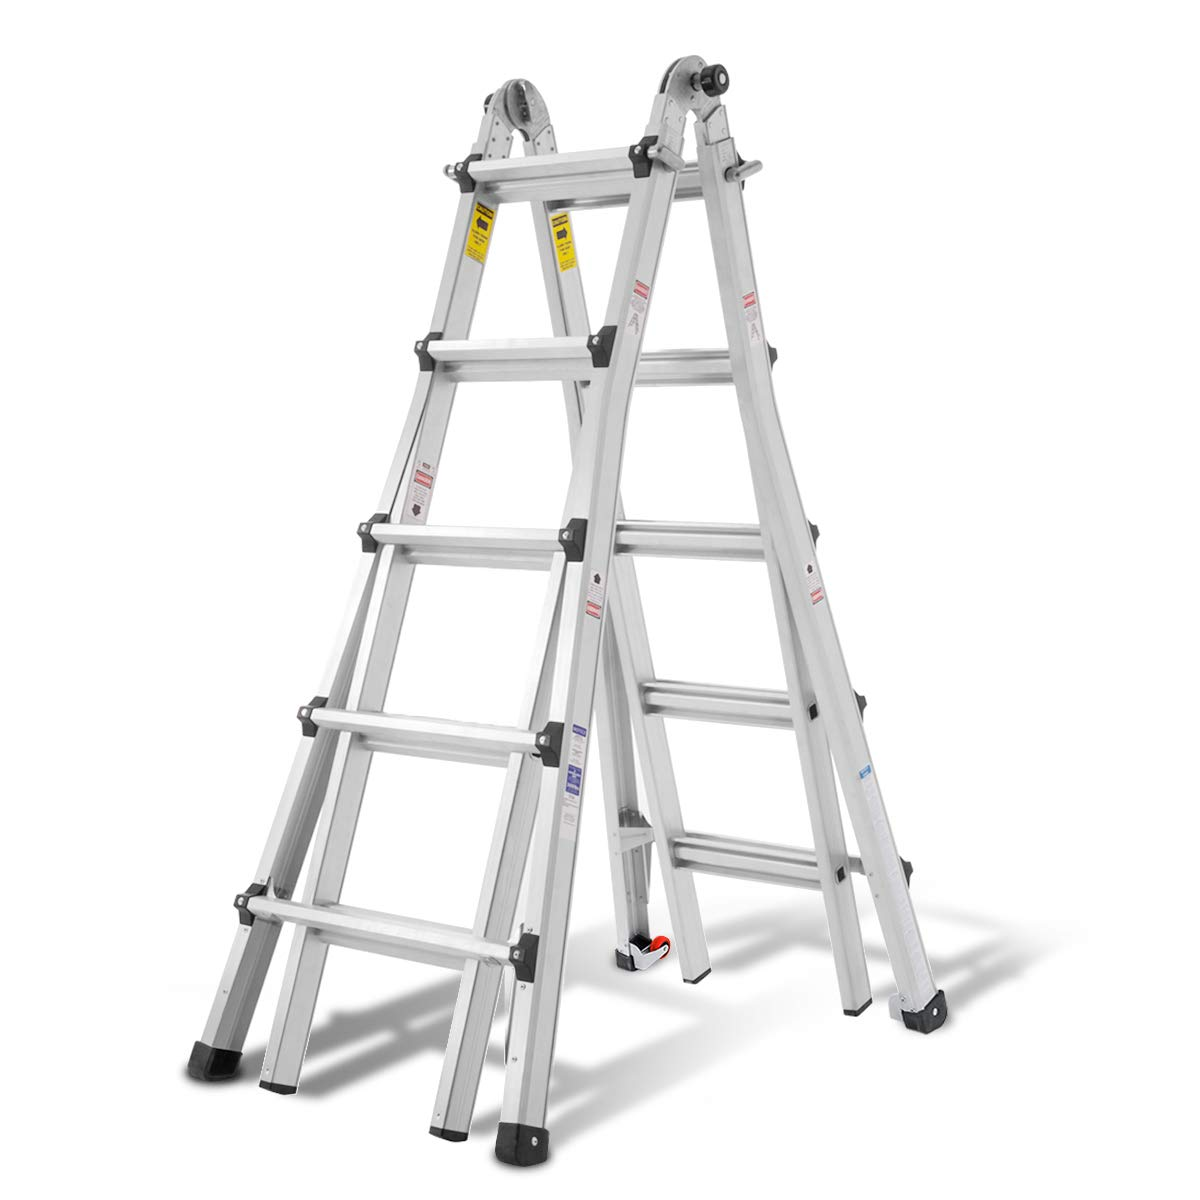 Amazon Com Orientools Aluminum Extension Ladder 300 Lb Duty Rating Load Capacity Type Ia Model 22 Foot Durable And Multi Purpose Ladder With Two Wheels Home Kitchen